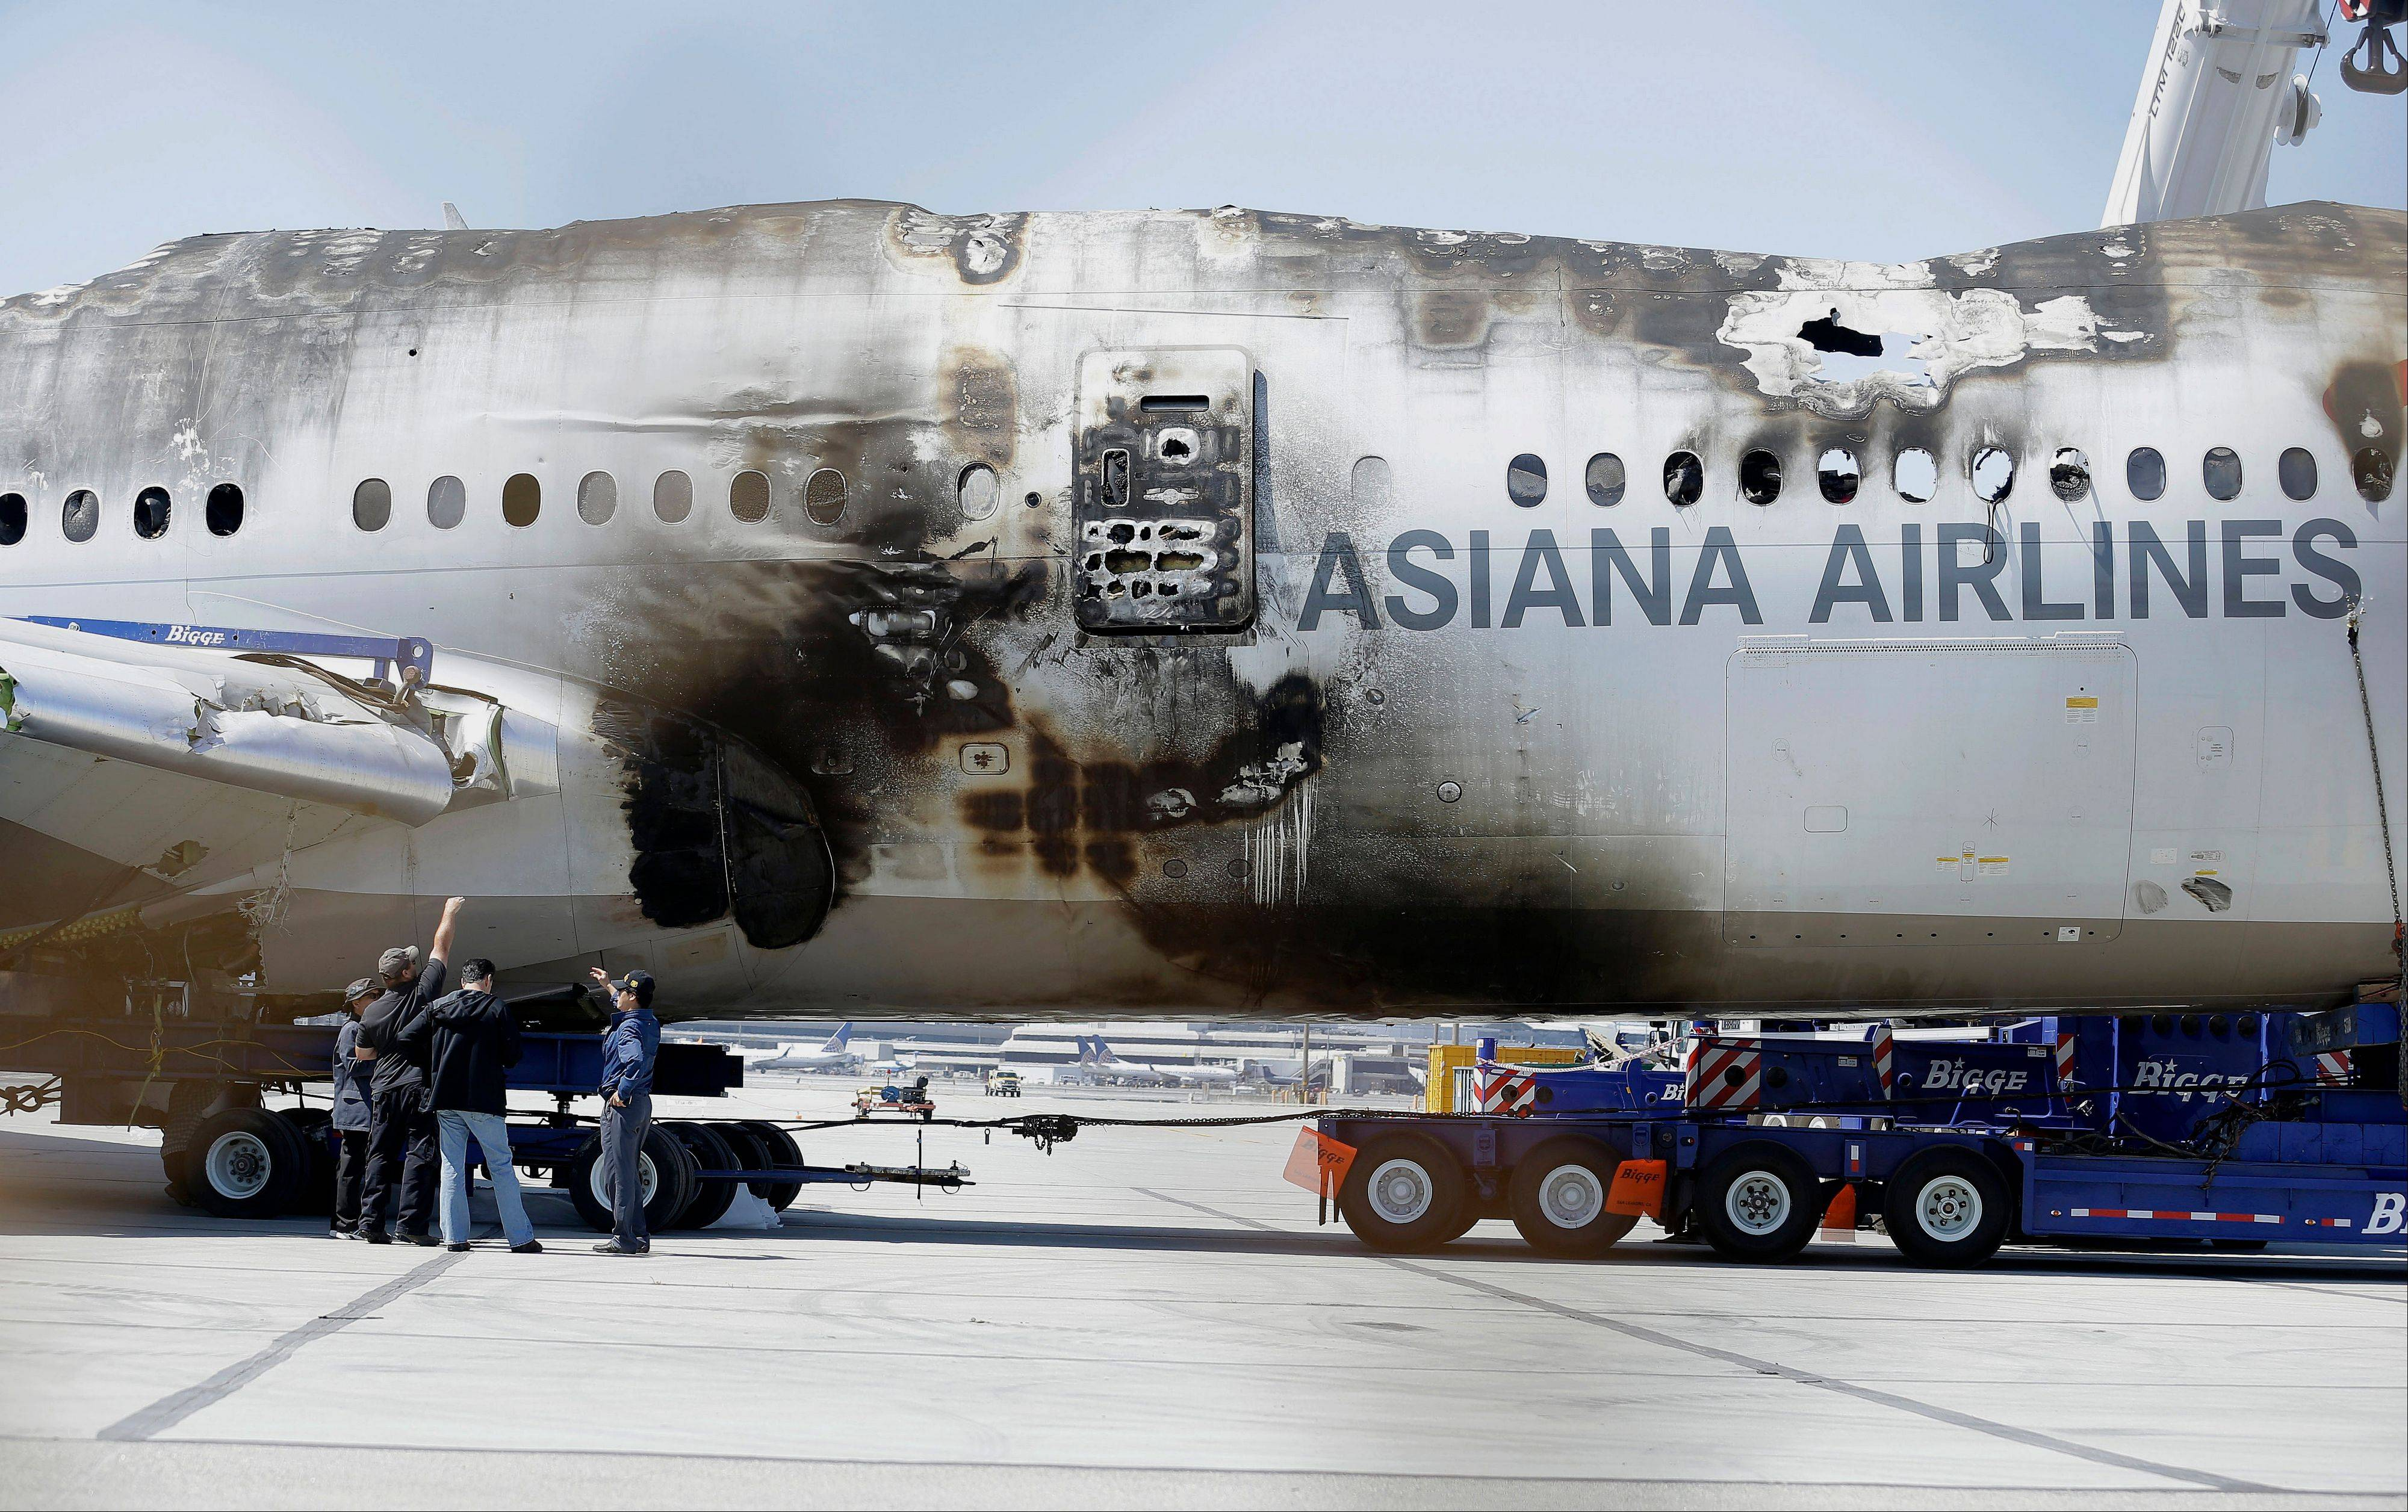 A group of men look at the wreckage of Asiana Flight 214, which crashed on July 6, at San Francisco International Airport. siana announced Monday that it will sue a San Francisco TV station that it said damaged the airline's reputation by using bogus and racially offensive names for four pilots on a plane that crashed earlier this month in San Francisco.